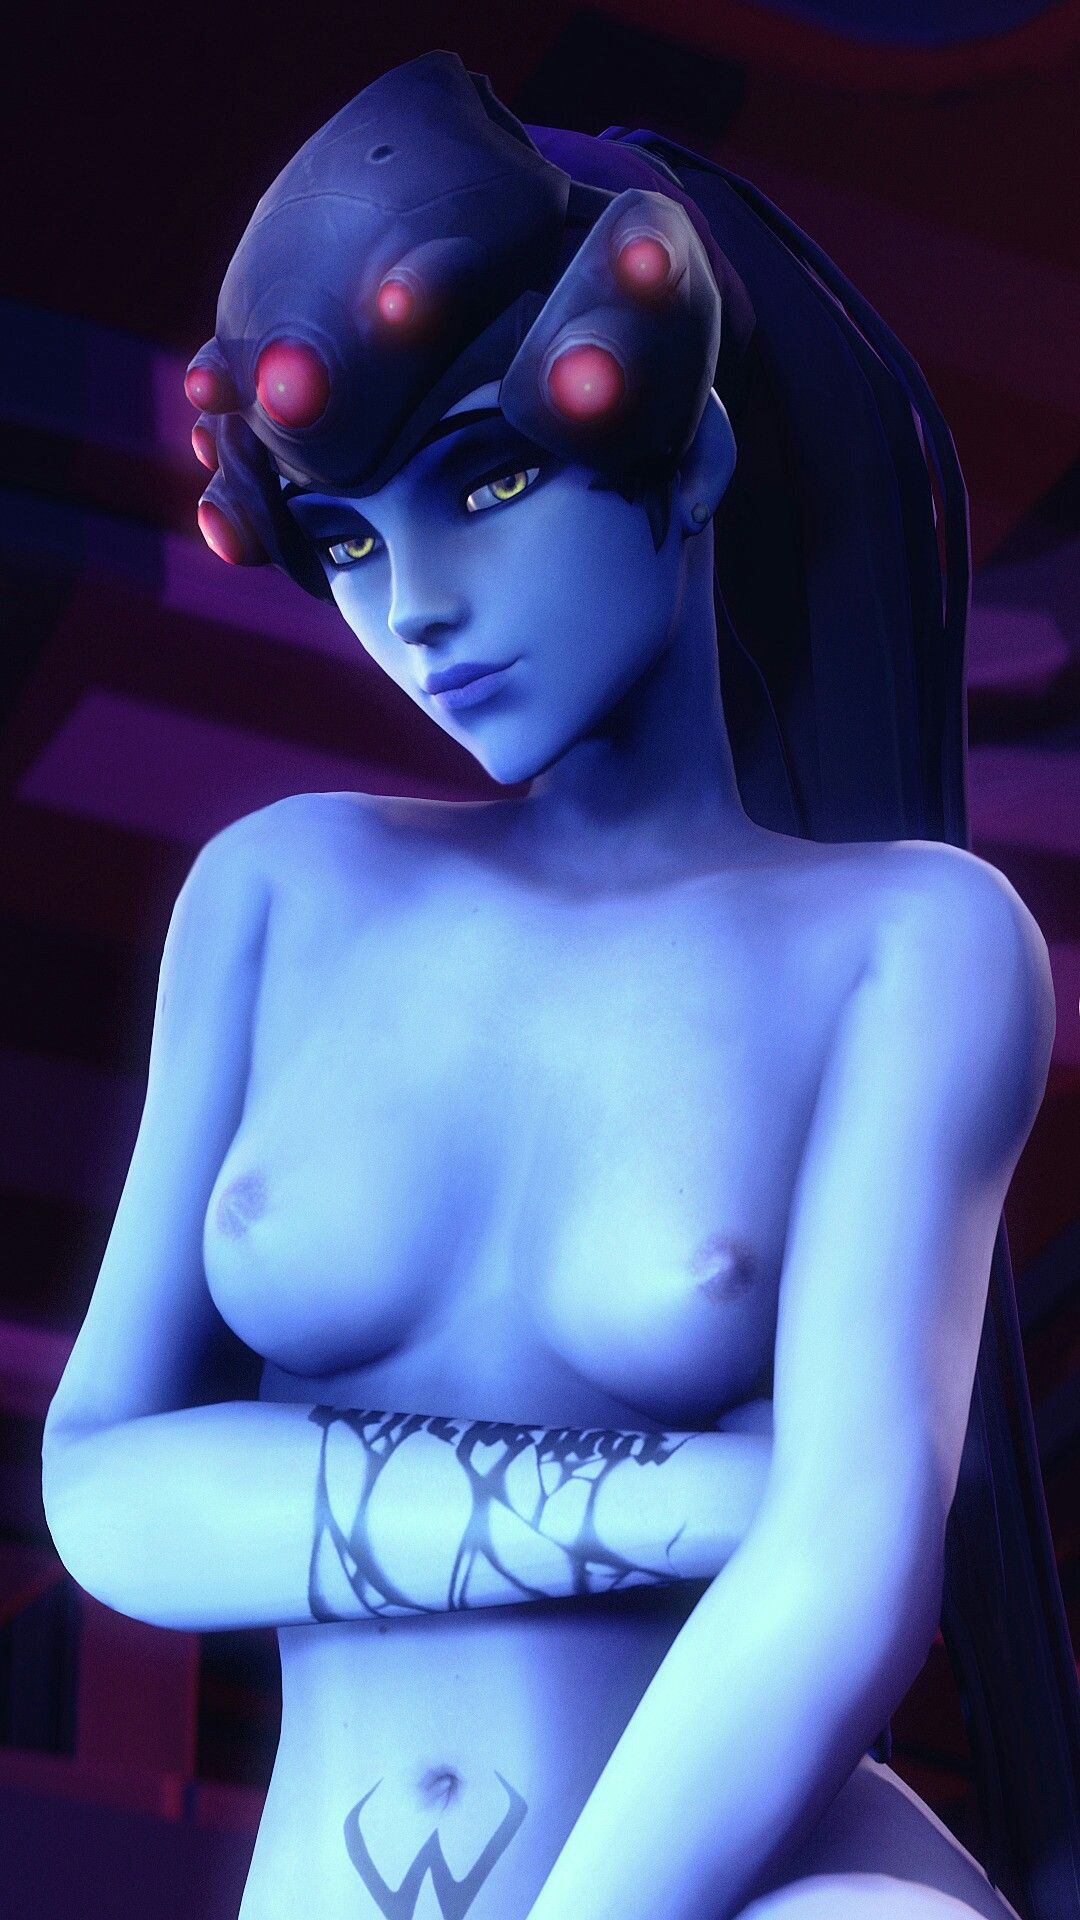 the blue skin of widowmaker is amazing | overwatch hentai